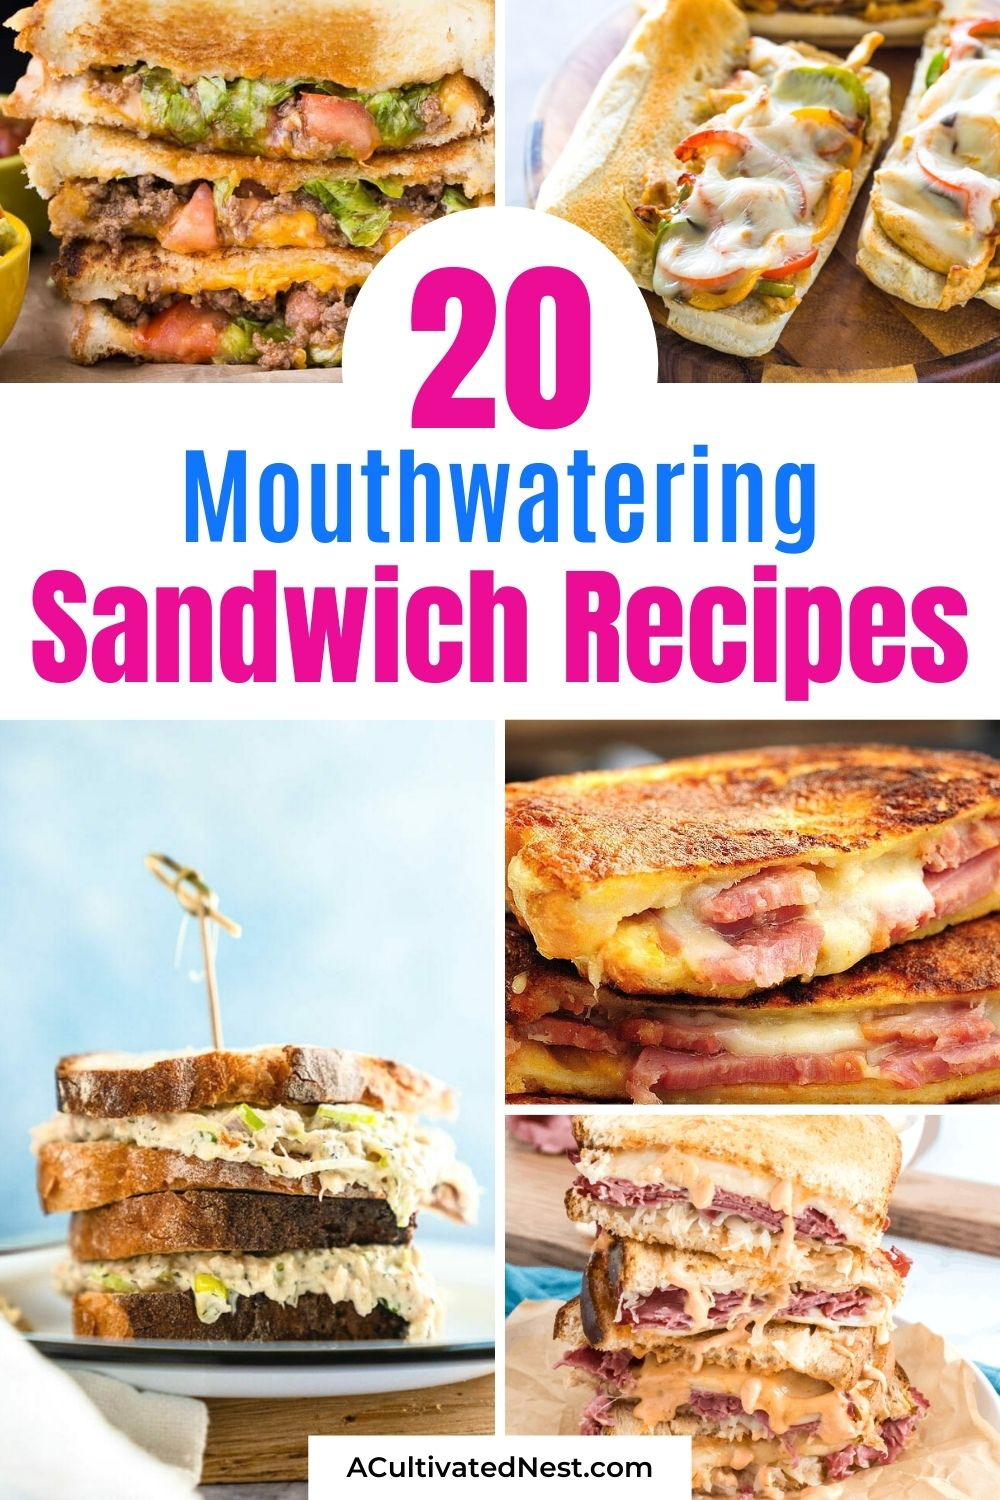 20 Mouthwatering Sandwich Recipes- If you want something new (and delicious) for lunch, then you have to try one of these 20 mouthwatering sandwich recipes! They're quick and easy to make, and they're perfect for all occasions!   #sandwiches #sandwichRecipe #lunchRecipe #lunch #ACultivatedNest